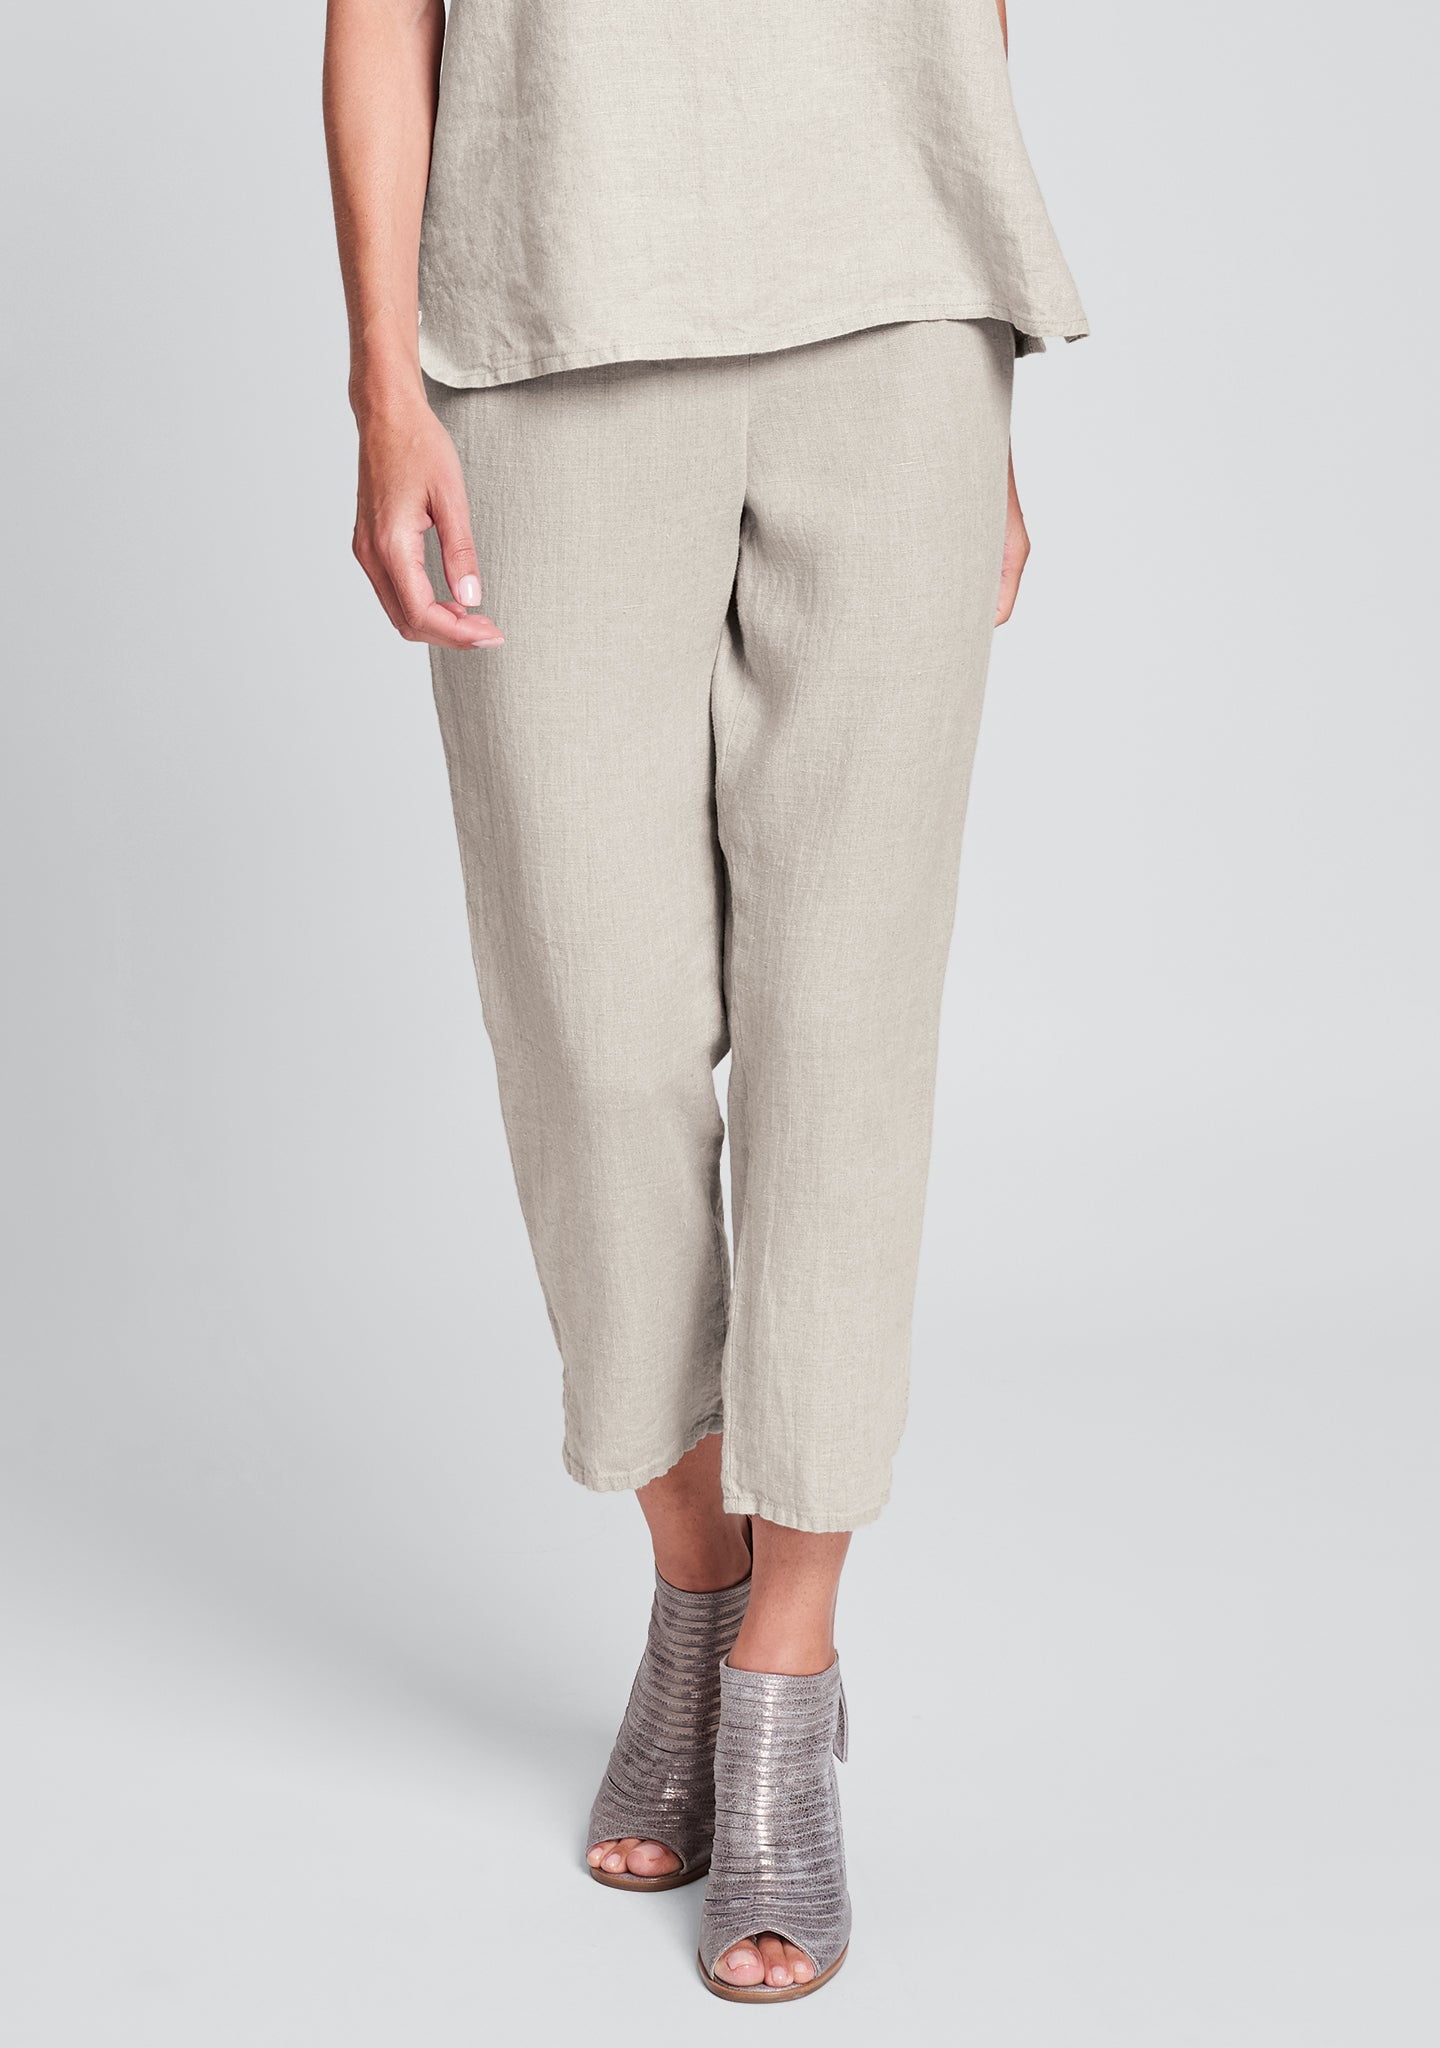 pocketed ankle pant linen pants natural